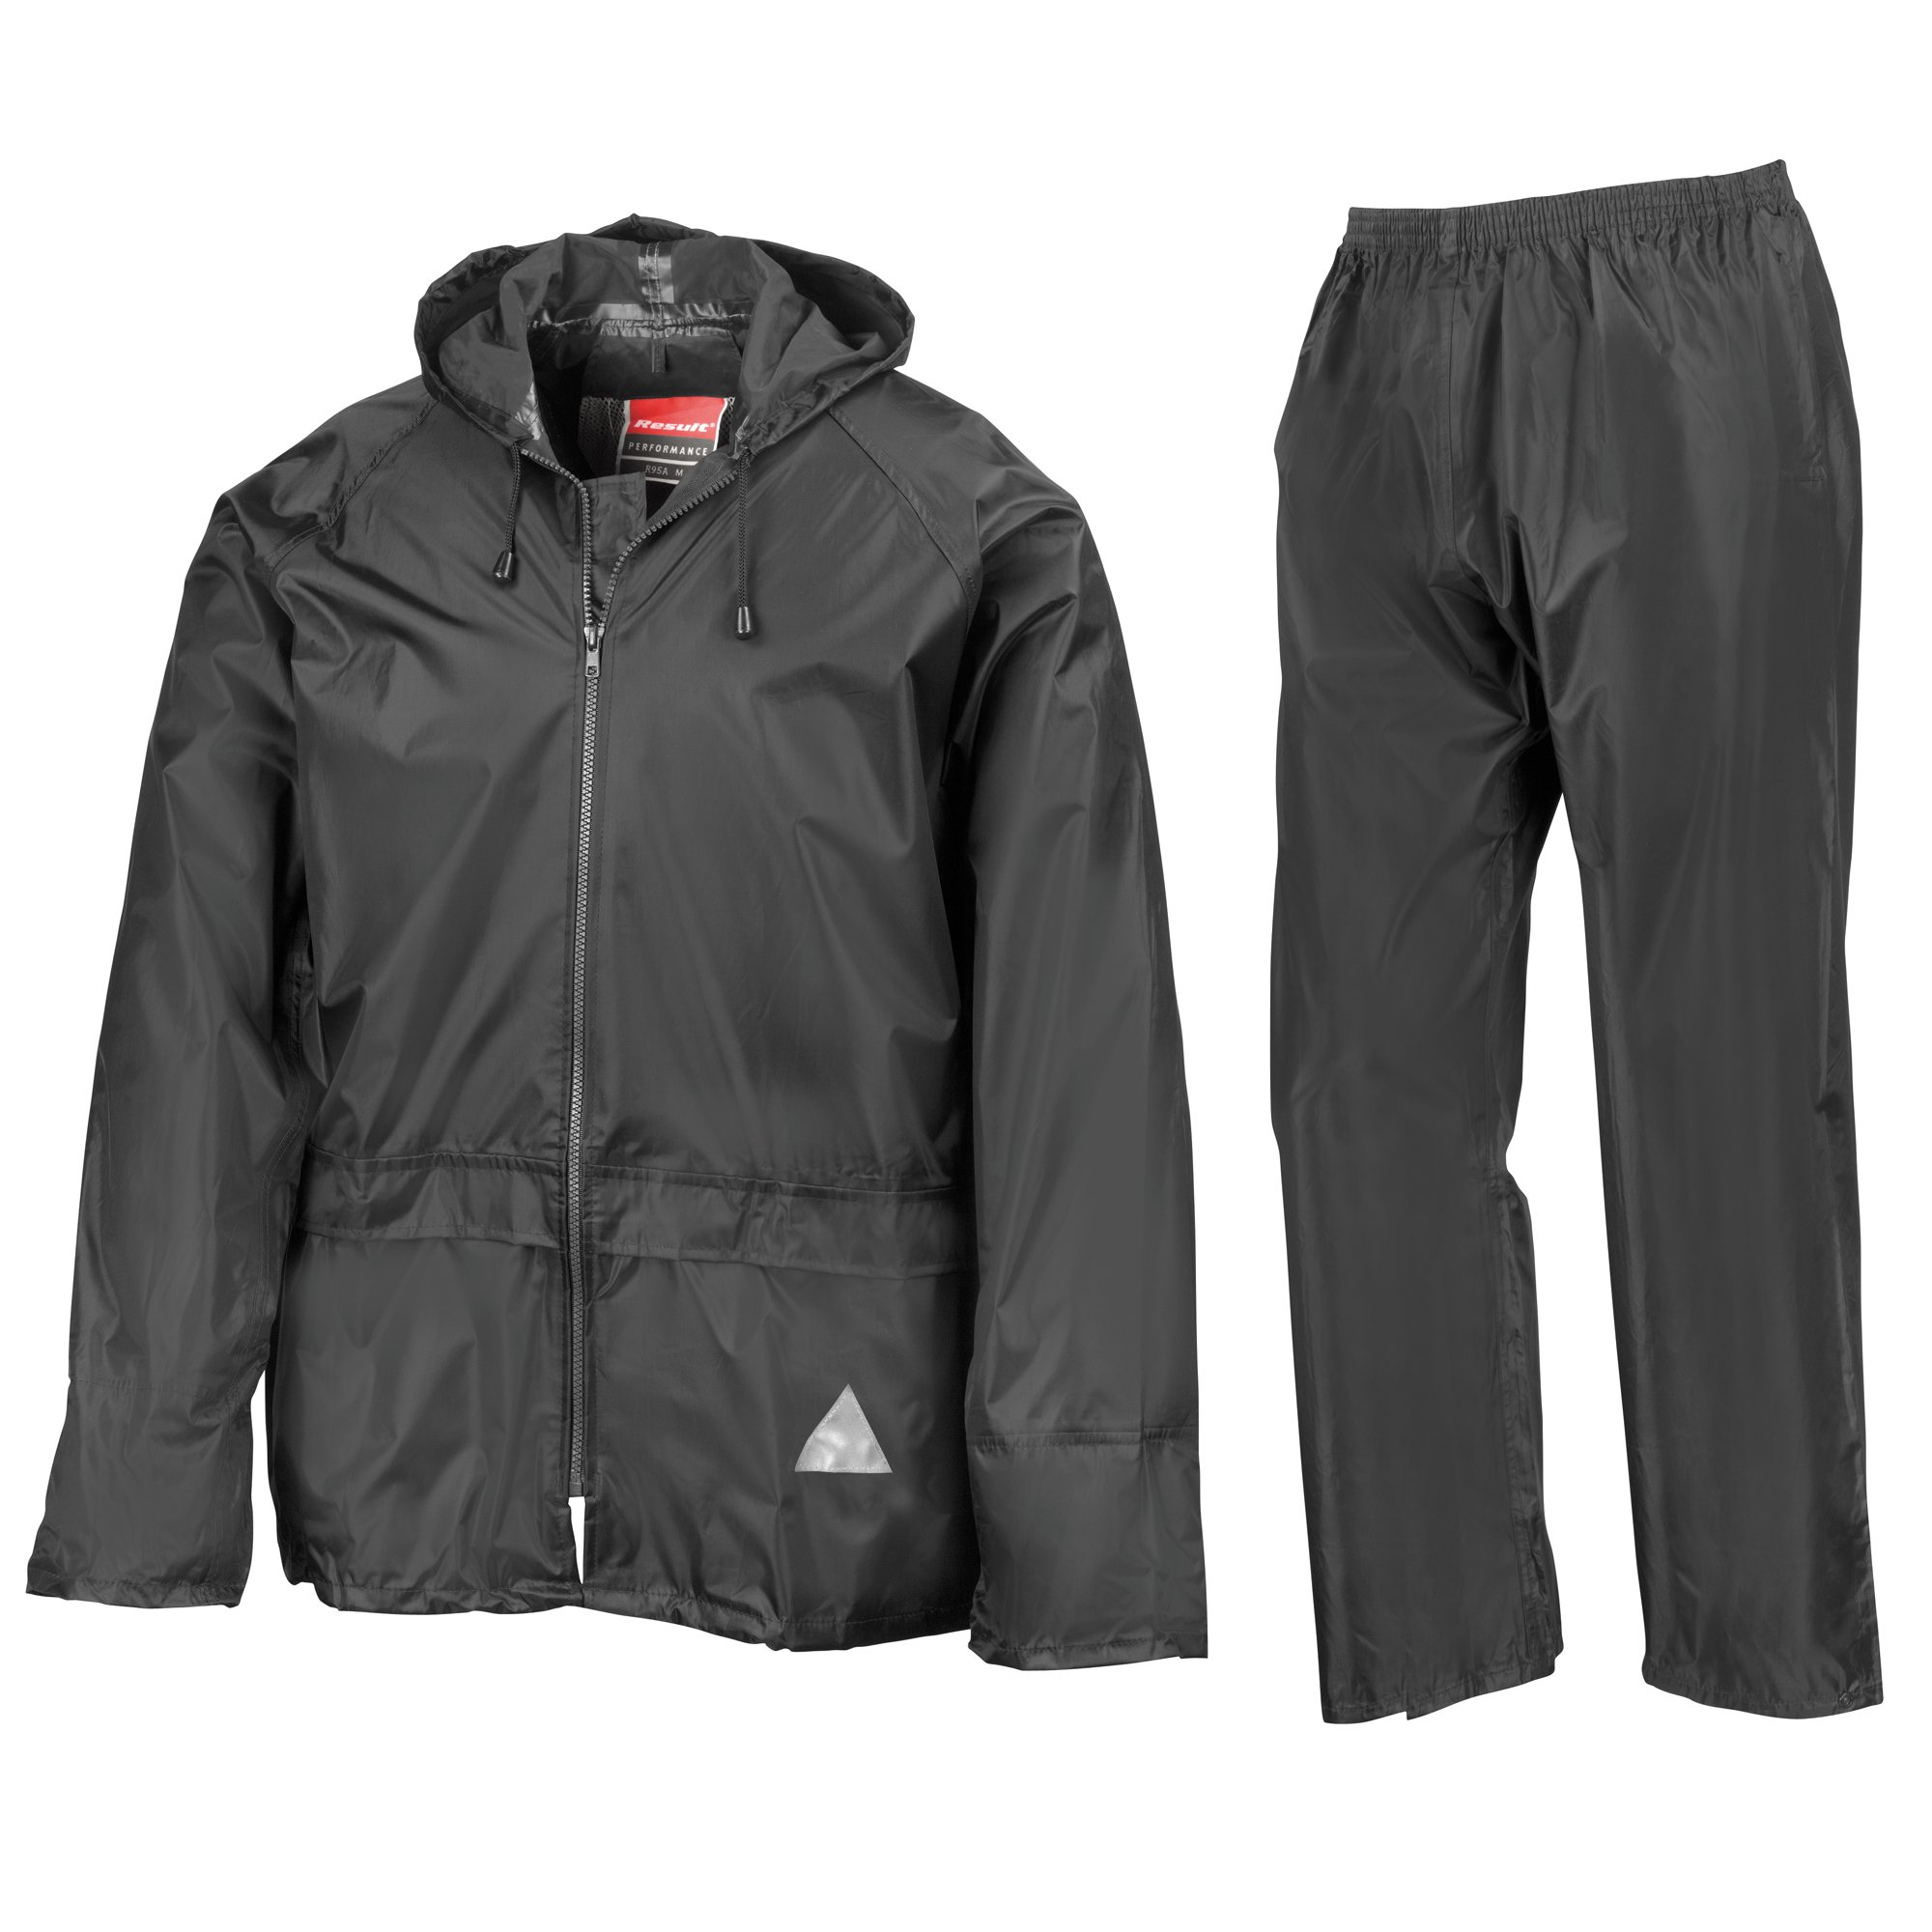 Result Heavyweight Waterproof Jacket Trouser